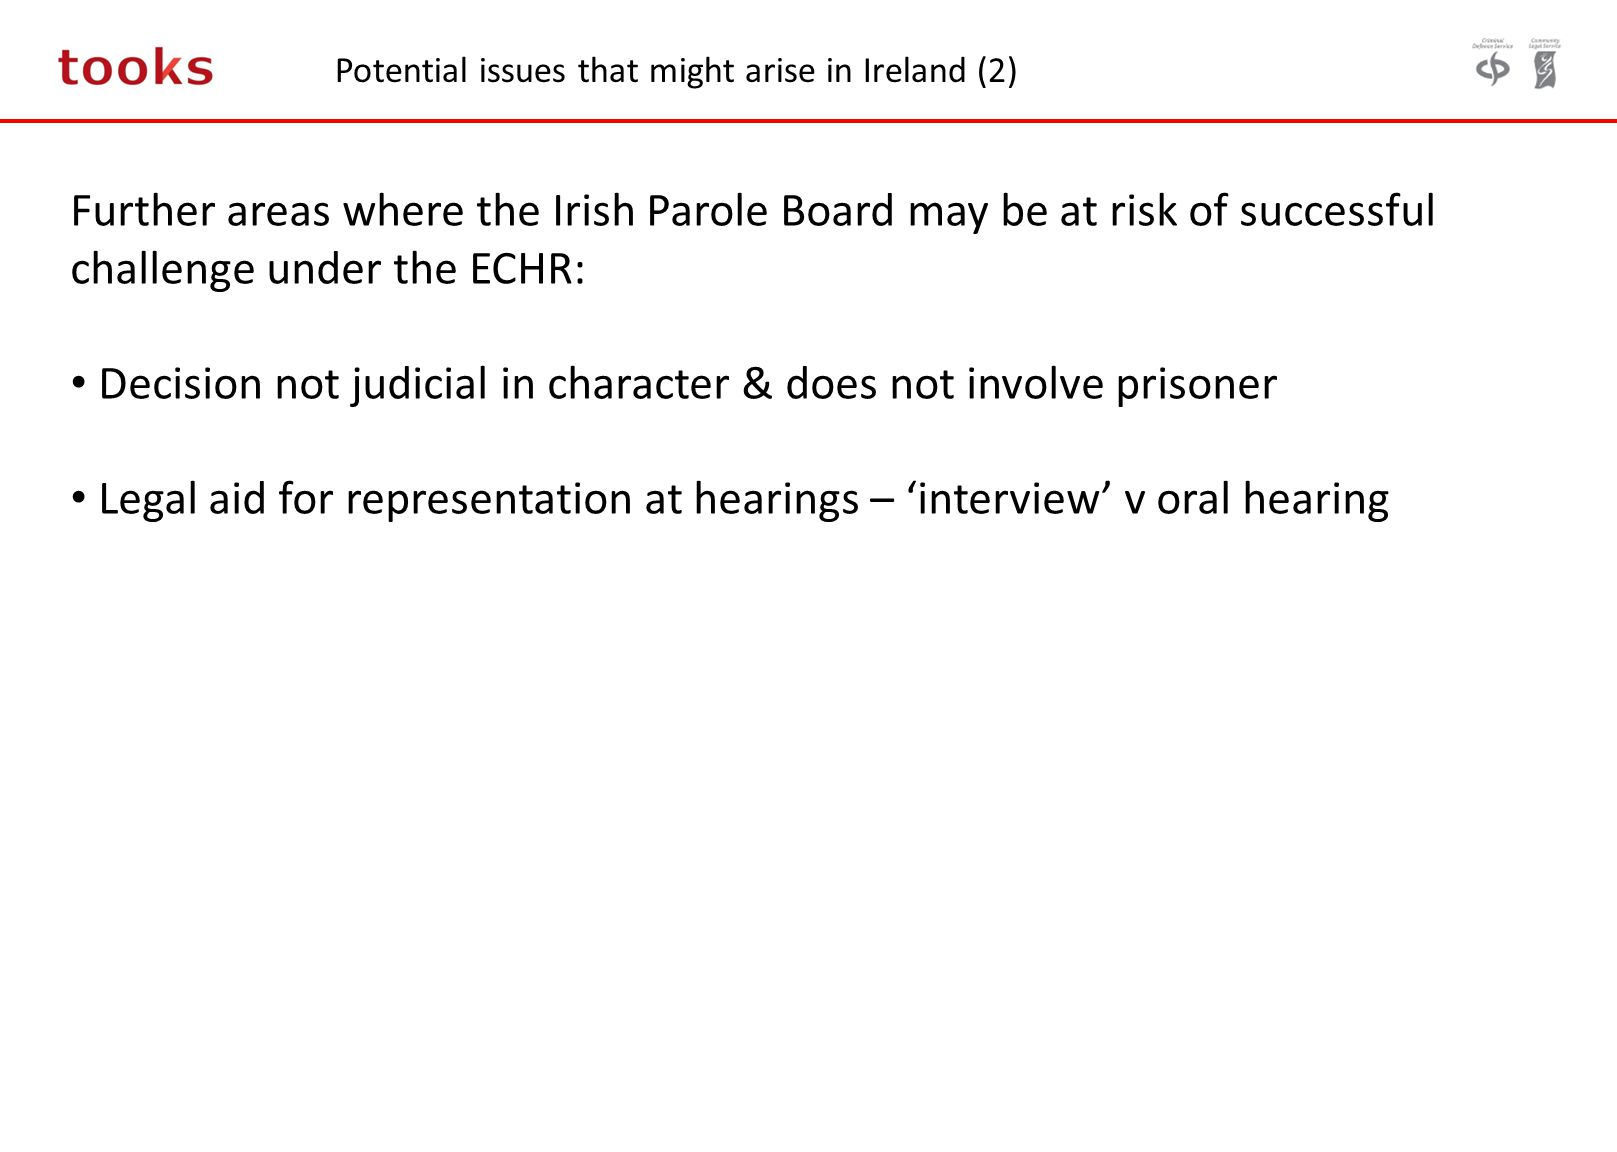 Potential issues that might arise in Ireland (2) Further areas where the Irish Parole Board may be at risk of successful challenge under the ECHR: Dec